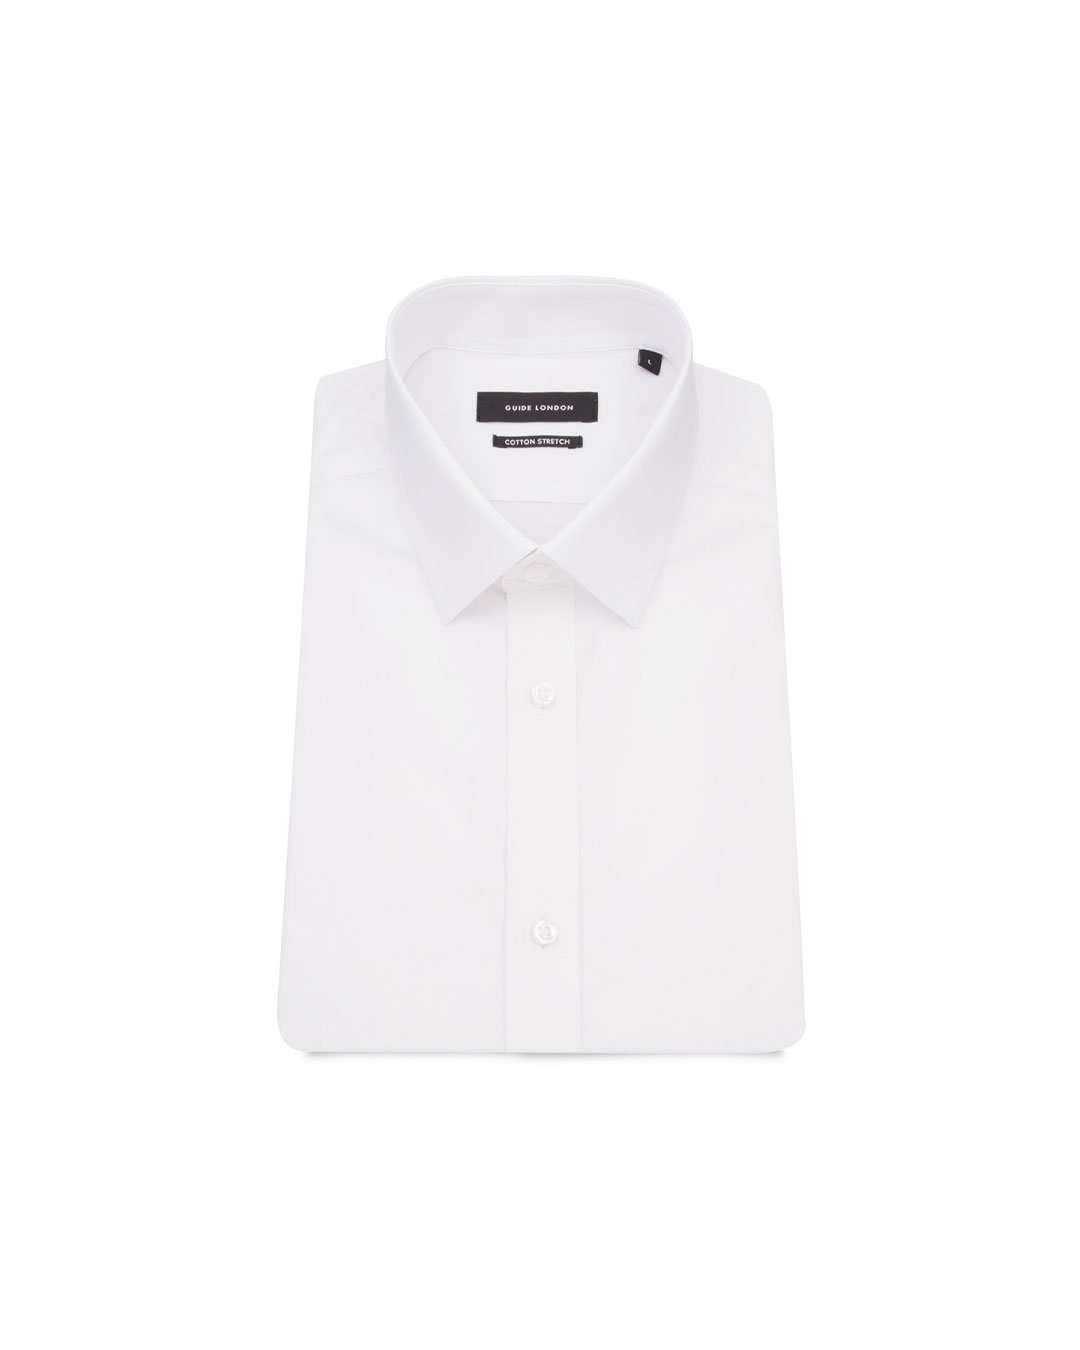 GUIDE LONDON Plain SS Shirt - Revolver Menswear Bawtry